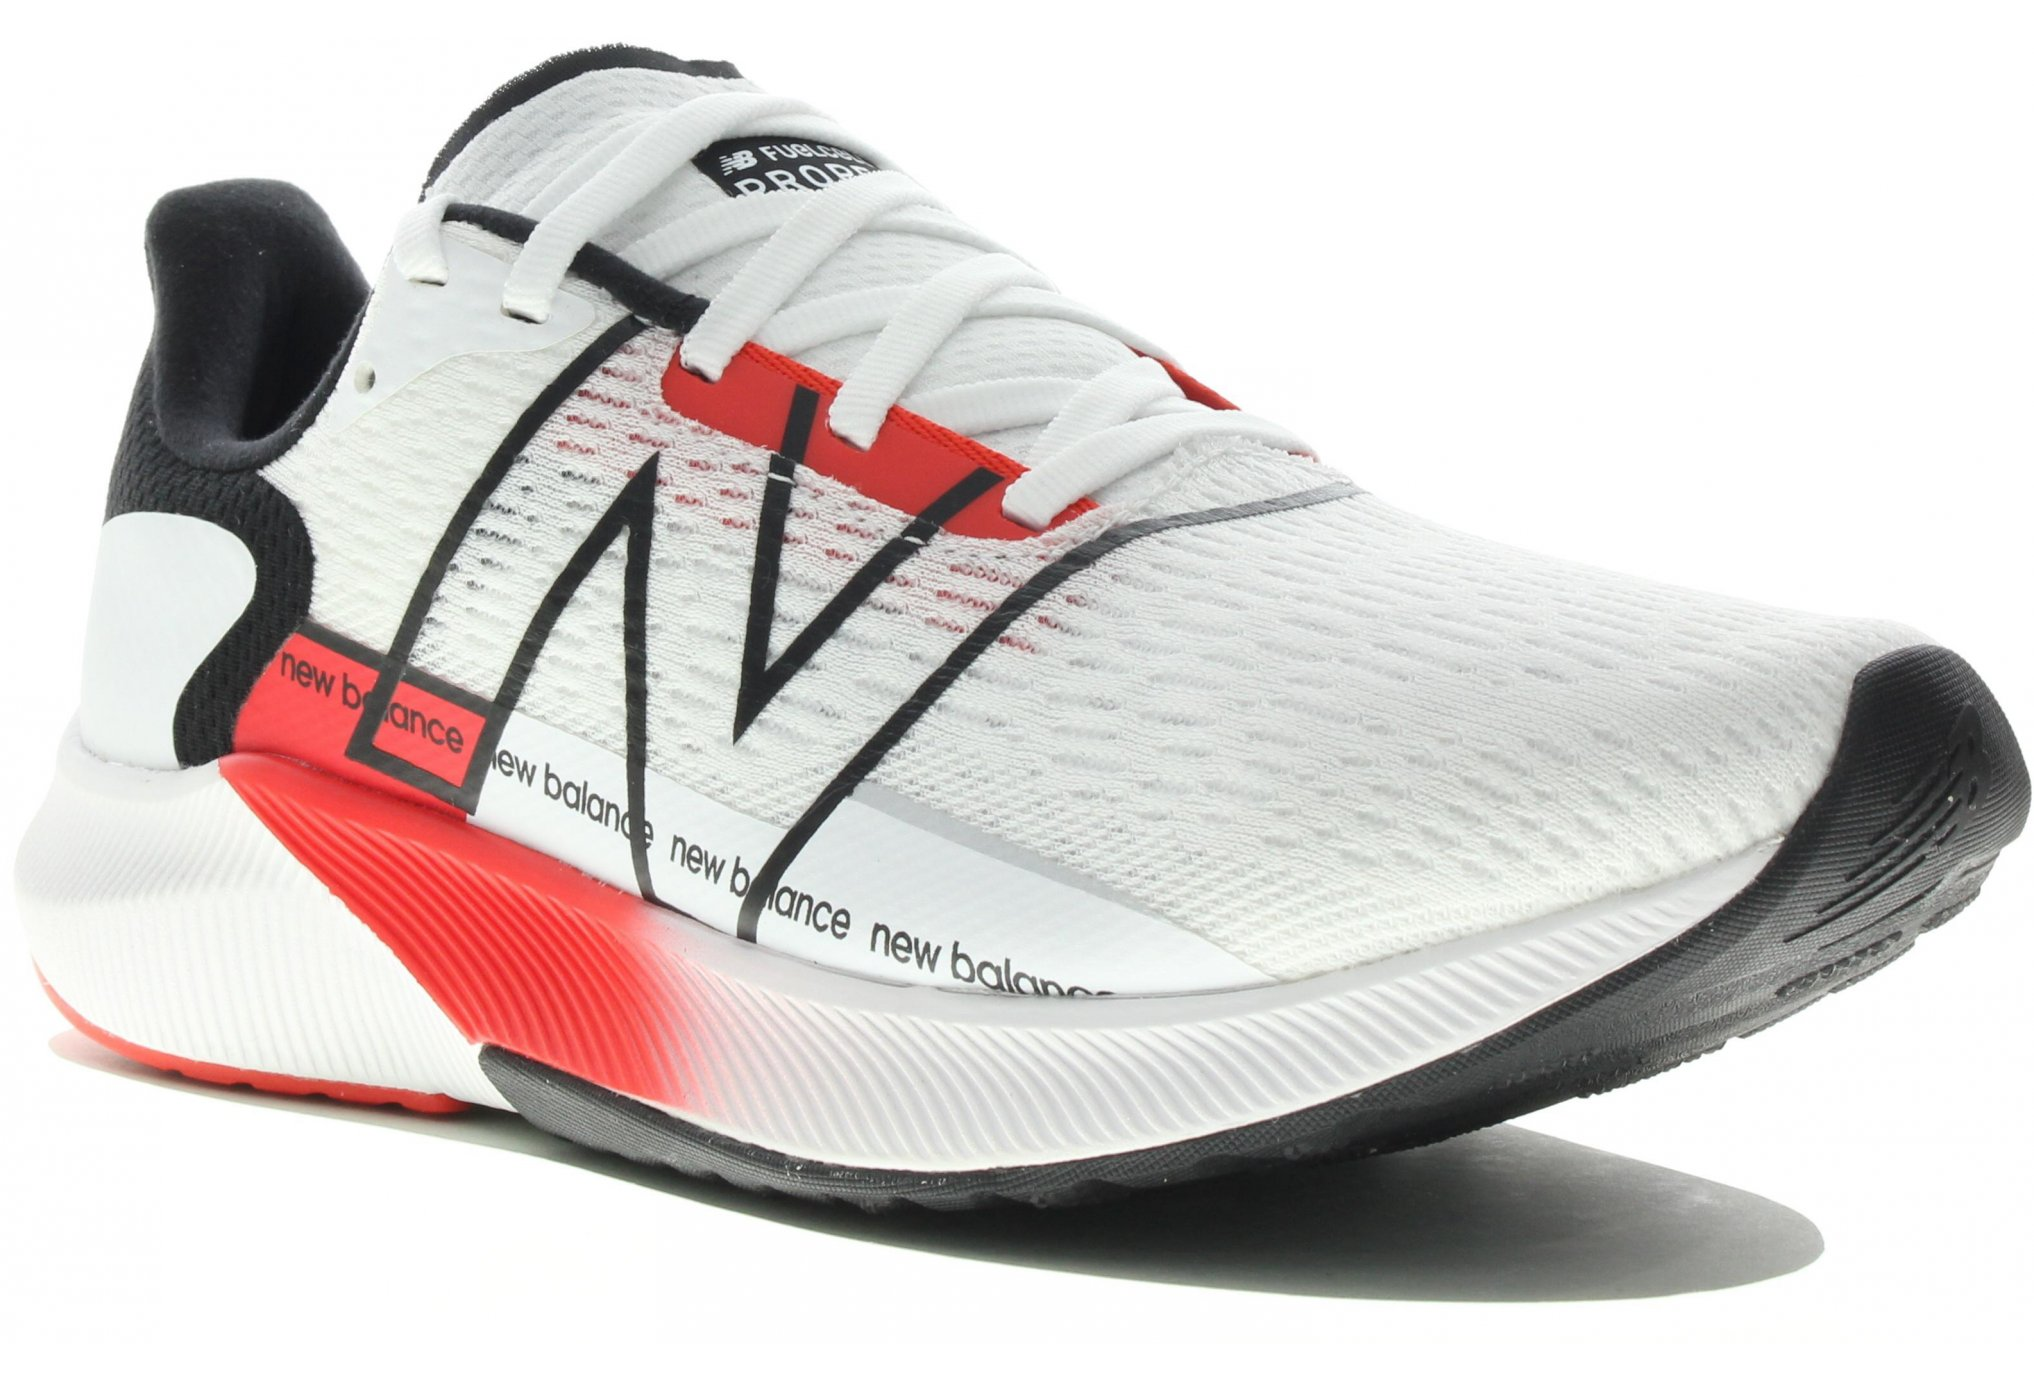 New Balance FuelCell Propel V2 Chaussures running femme